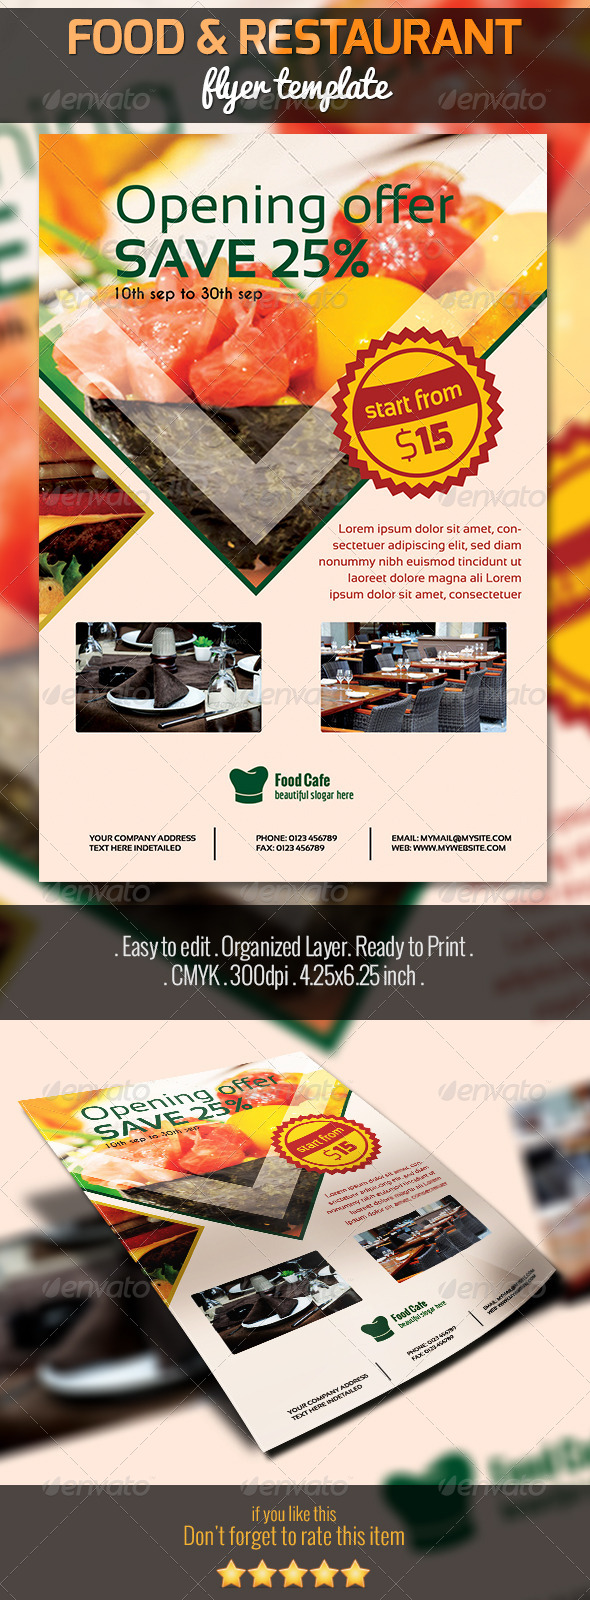 GraphicRiver Food and Restaurant Flyer 5451211